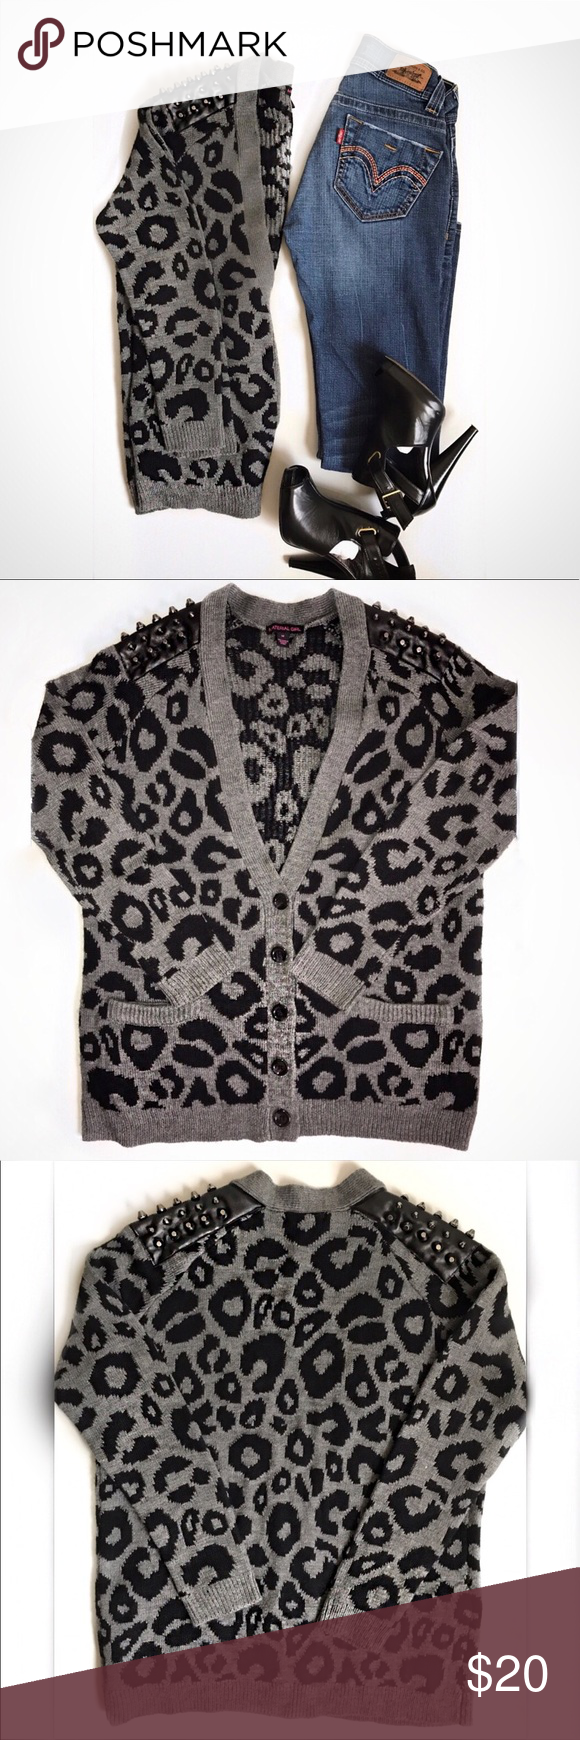 Material Girl Leopard Print Sweater | Material girls, Black ...